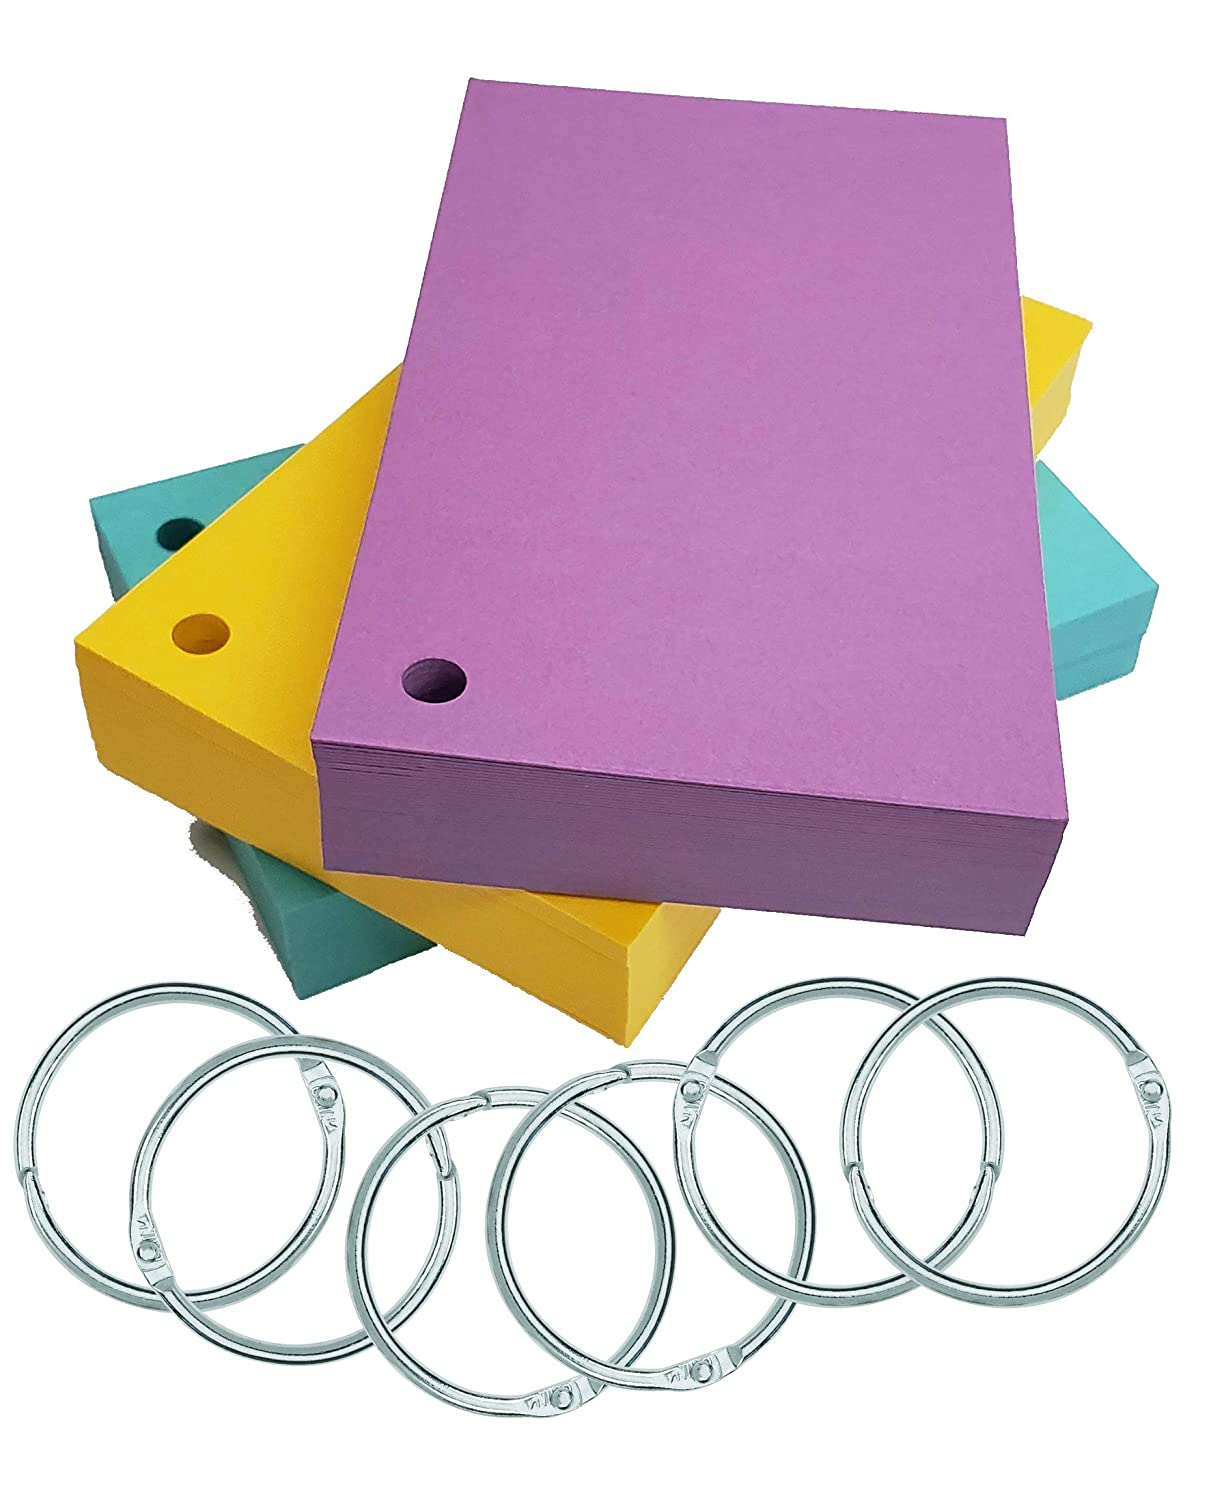 3 X 5 Inch Cards - Single Hole Punched With 6 Rings Packaged In 50s Debra Dale Designs 50 Each Of Three Astrobright Colors Premium Smooth Extra Heavy 100# Card Stock Blue, Yellow, Purple